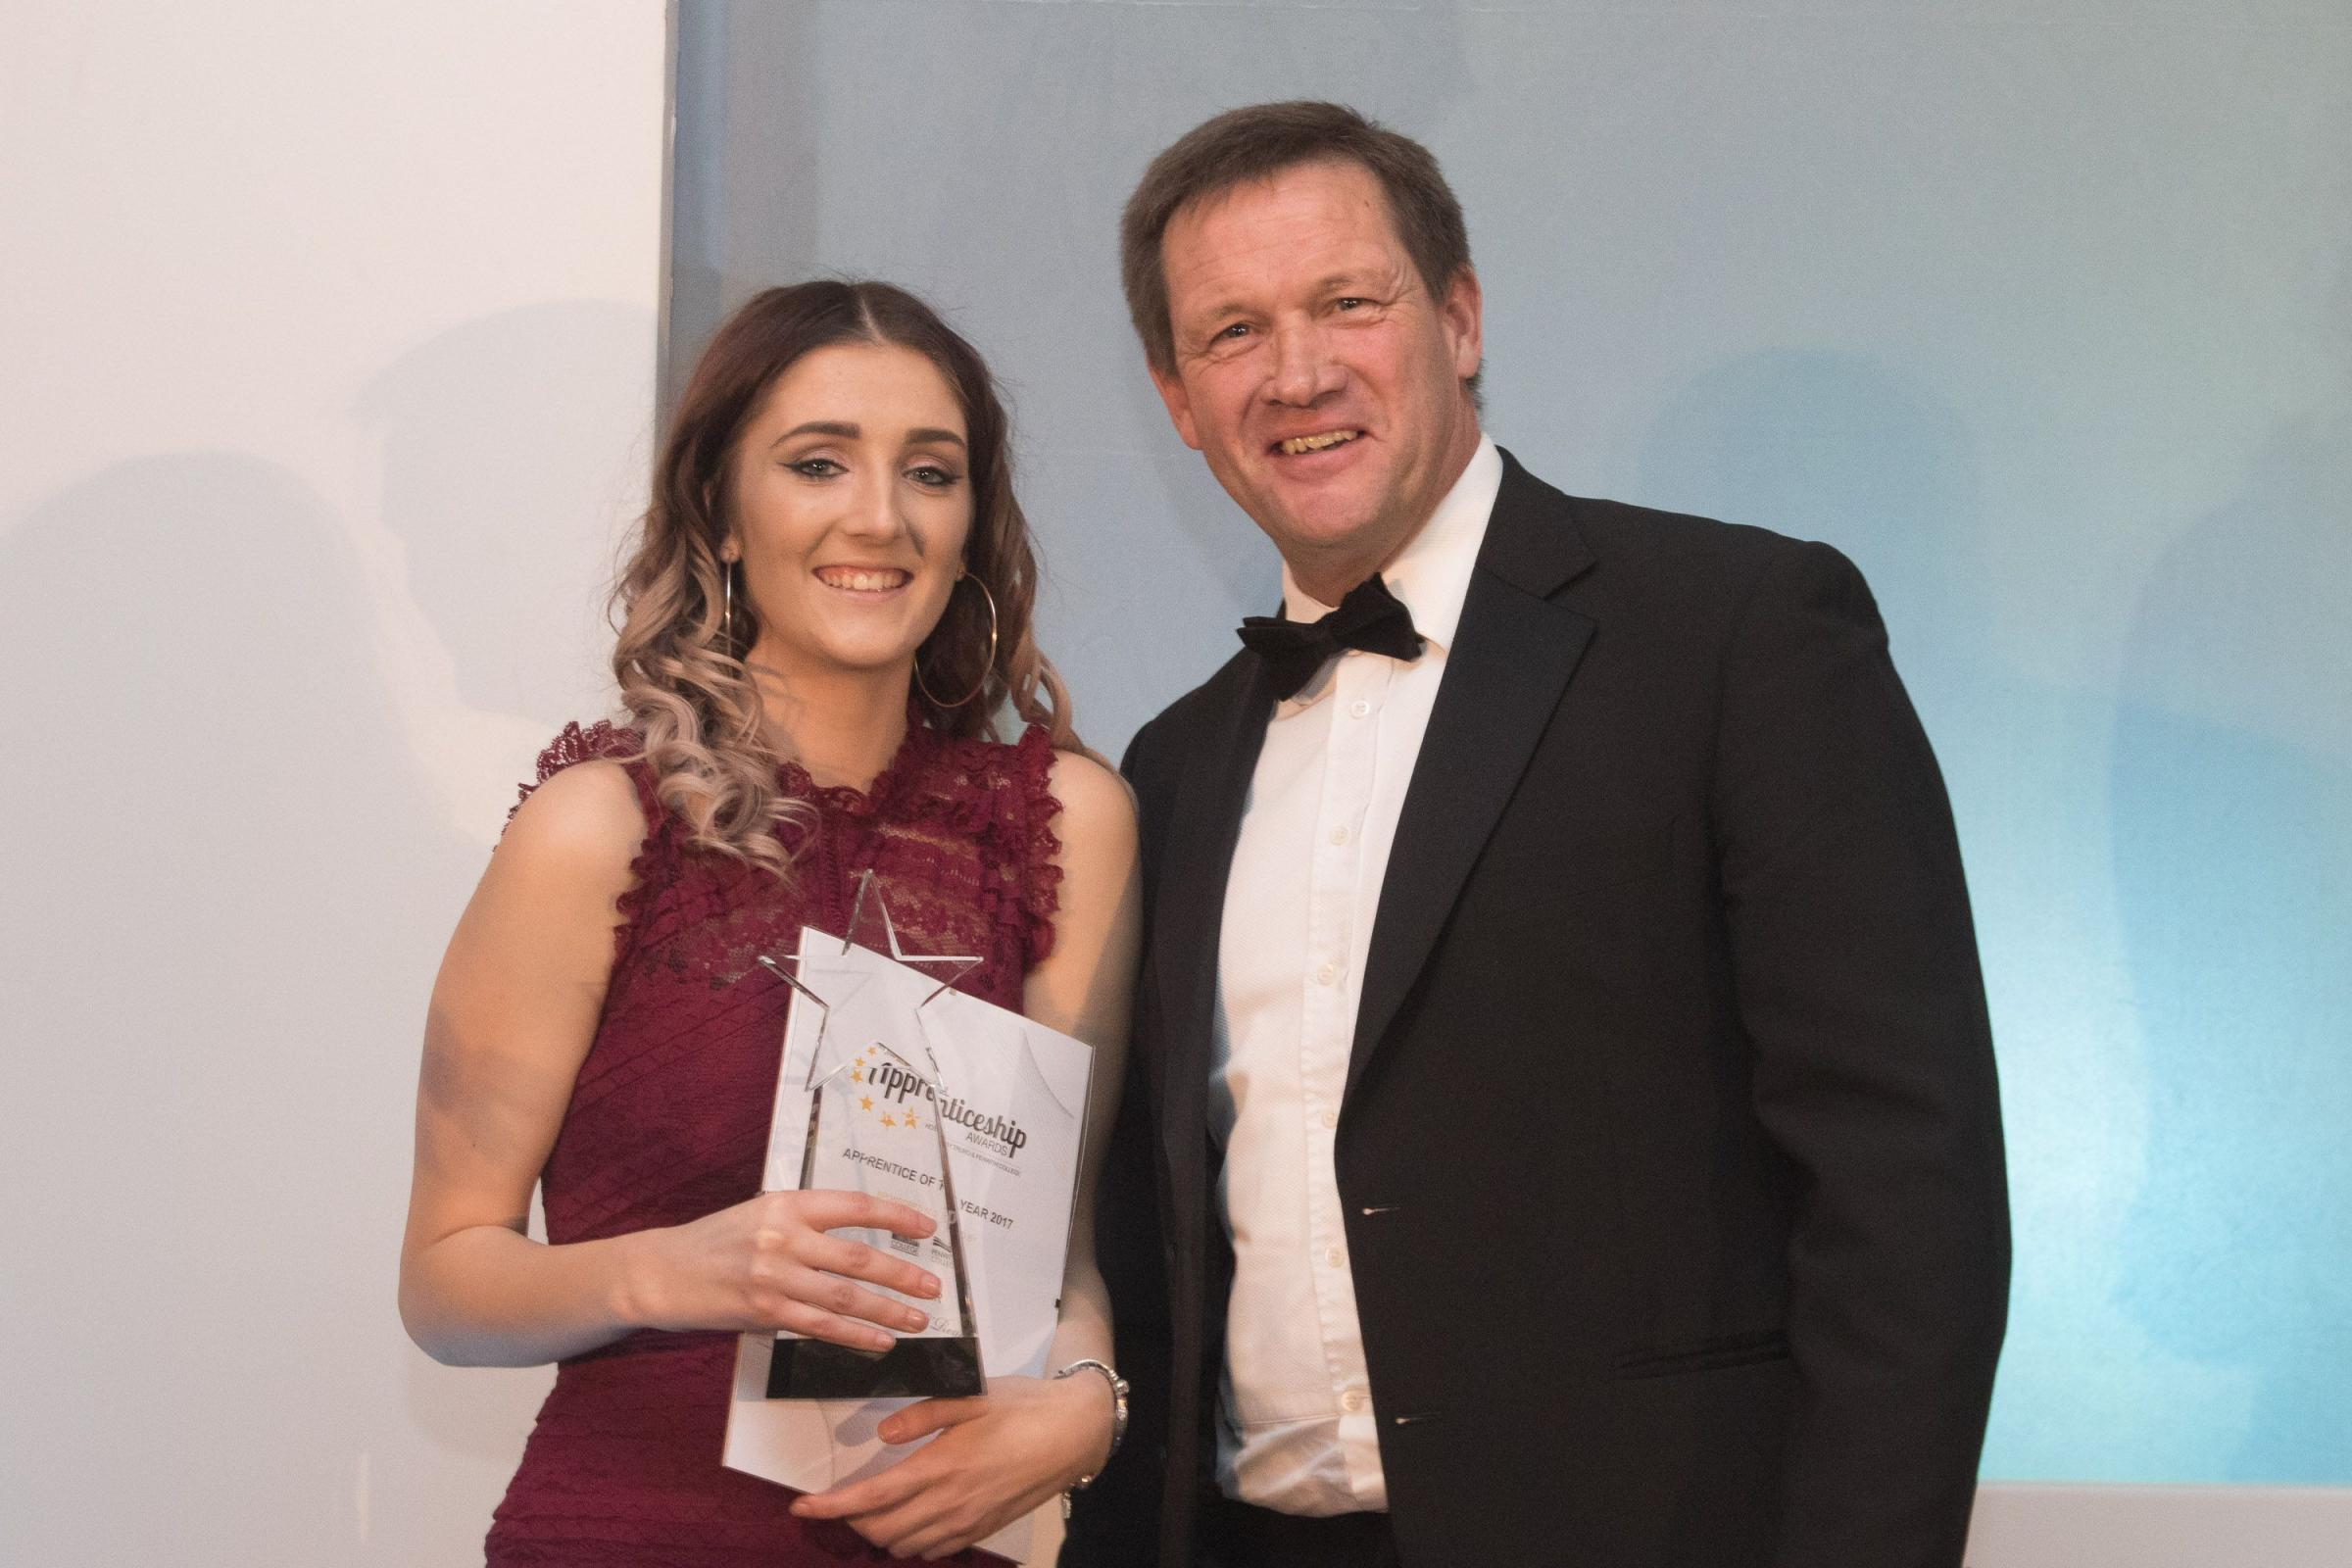 - Apprentice of the Year and Hair and Beauty Apprentice of the Year in 2017 Shannon O Regan with Martin Tucker, Director of Operations at Truro and Penwith College.